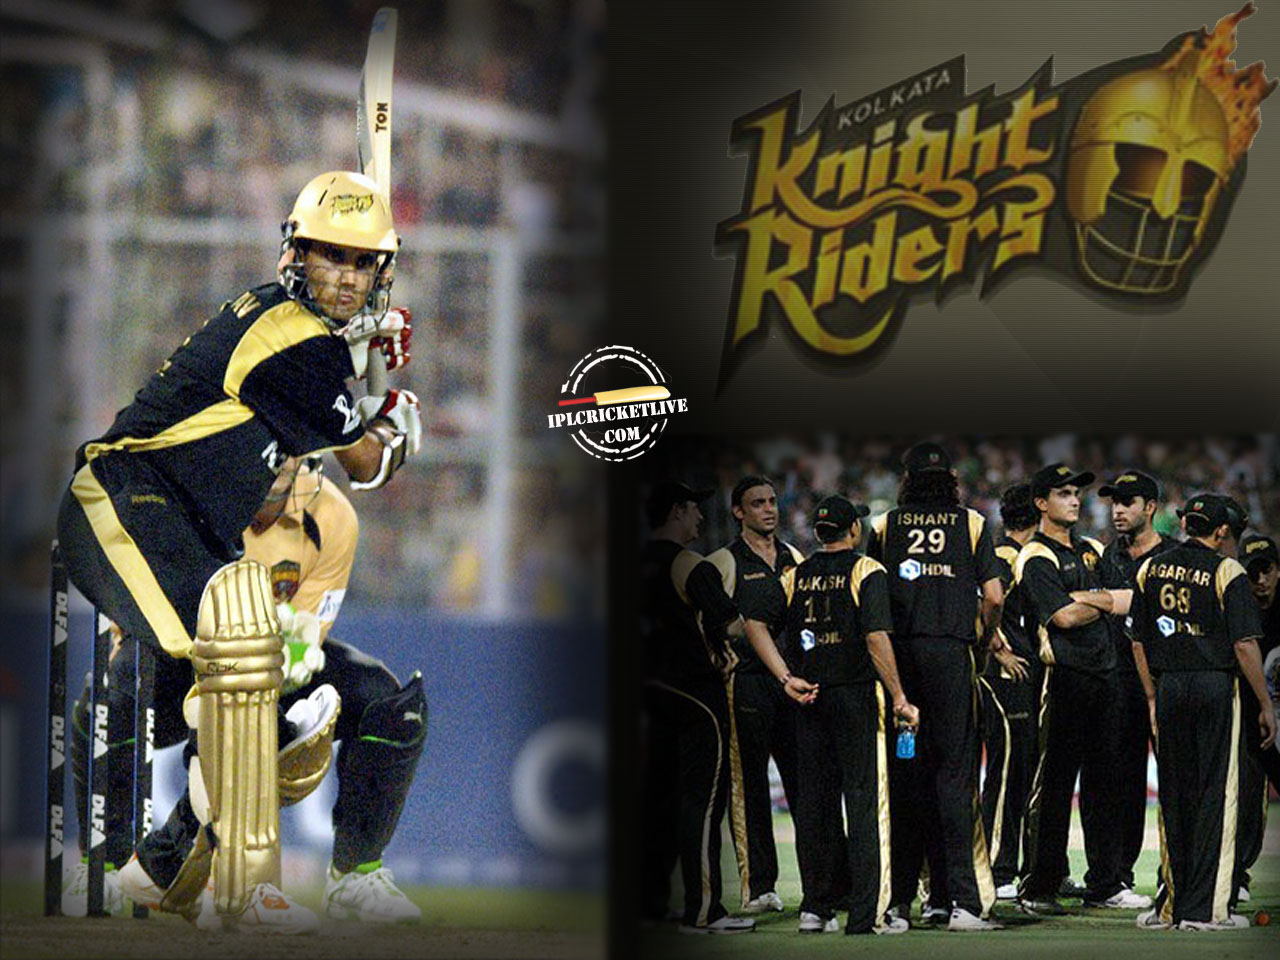 IPL 2016, Indian Premier League 2016 - Kolkata Knight Riders Wallpaper